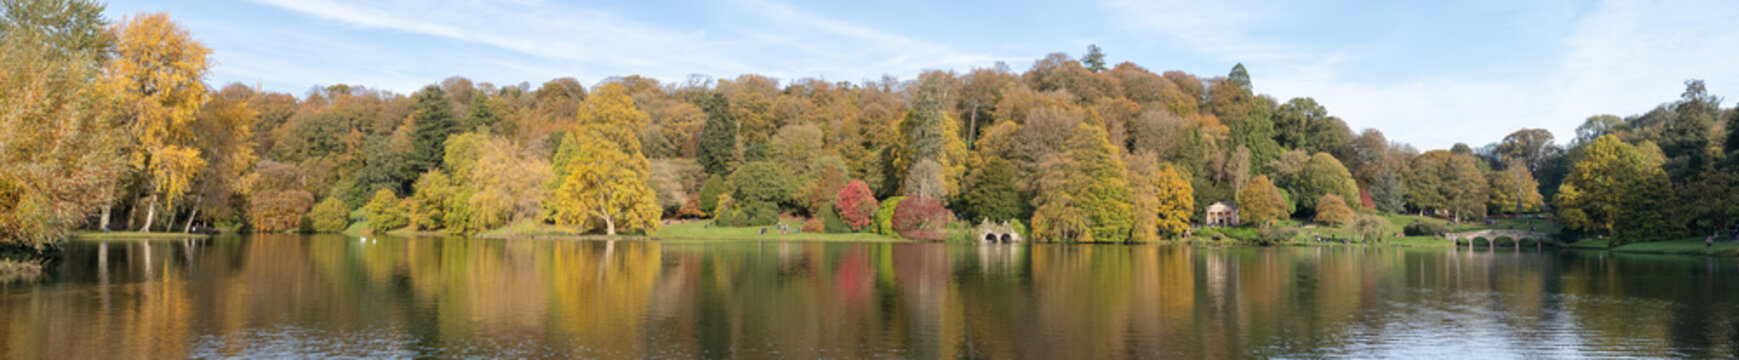 Panoramic photo of the autumn colours around the lake at Stourhead gardens in Wiltshire.